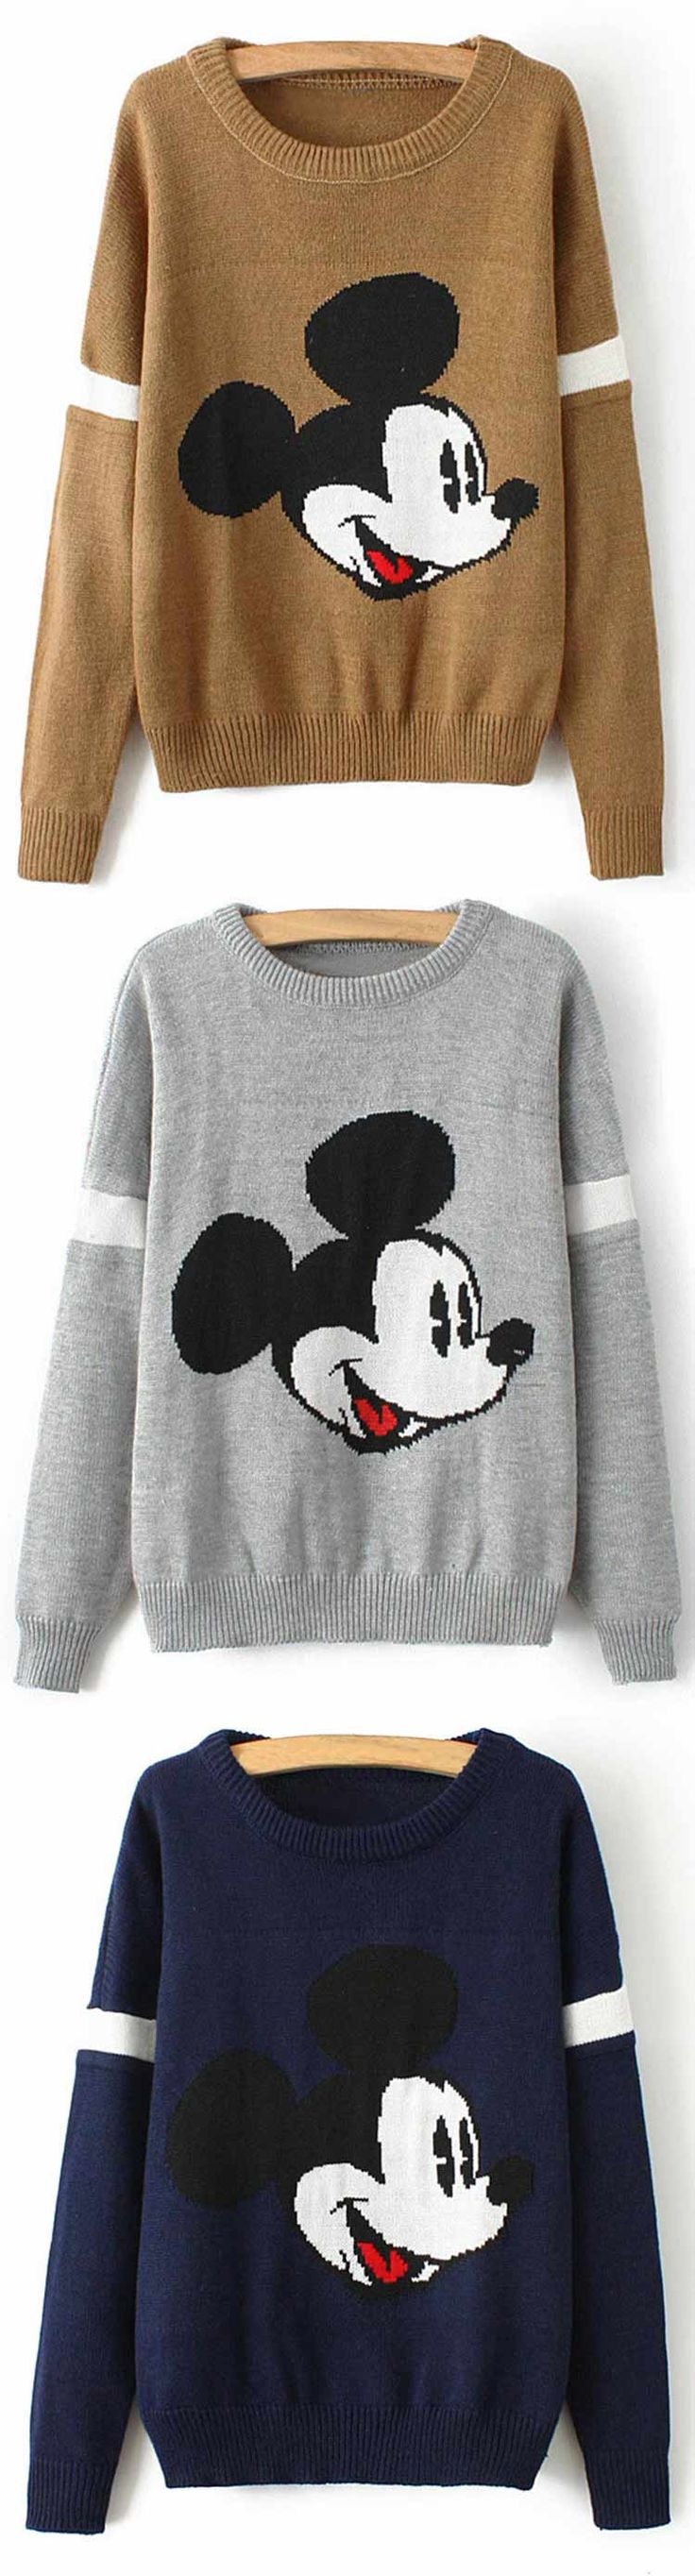 Mickey is here, Only $17.99 & One Week Shipping Time! Don't worry about rainy cold day anymore. It's time for you to bring it into wardrobe! Keep you warm all the fall at Cupshe.com